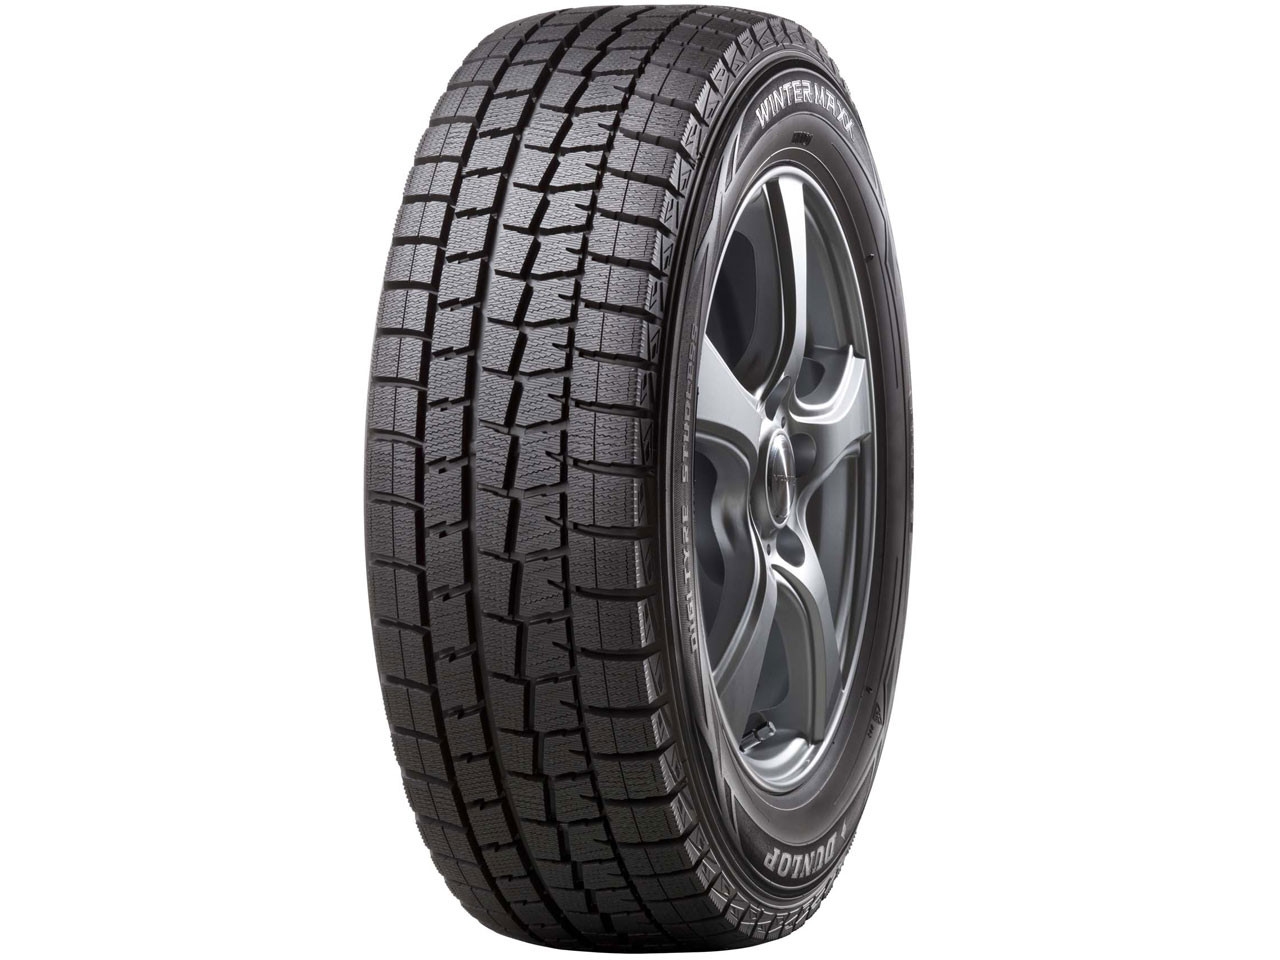 Зимние шины Dunlop Winter Maxx WM01 175/65/ R14, фото 1